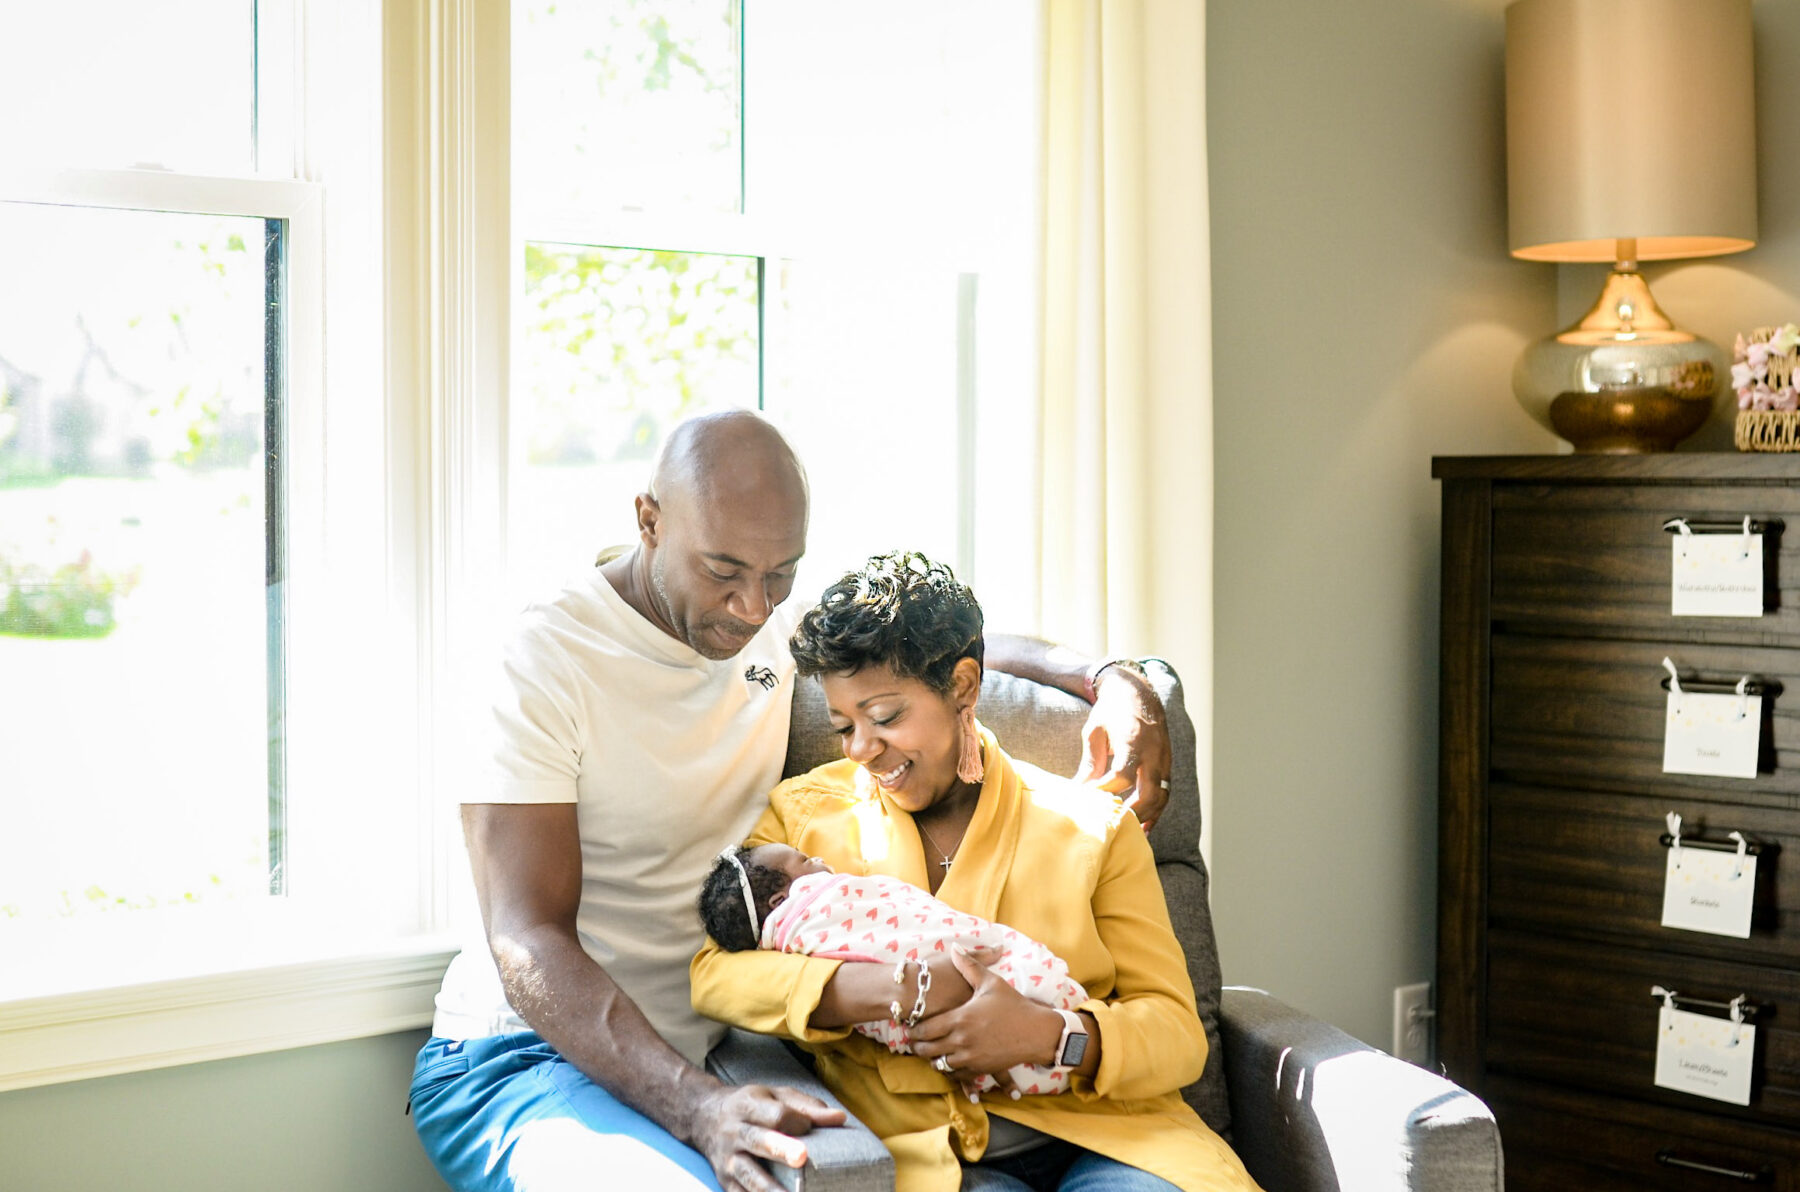 Sweet Newborn Session from By Jarquise featured on Nashville Bride Guide